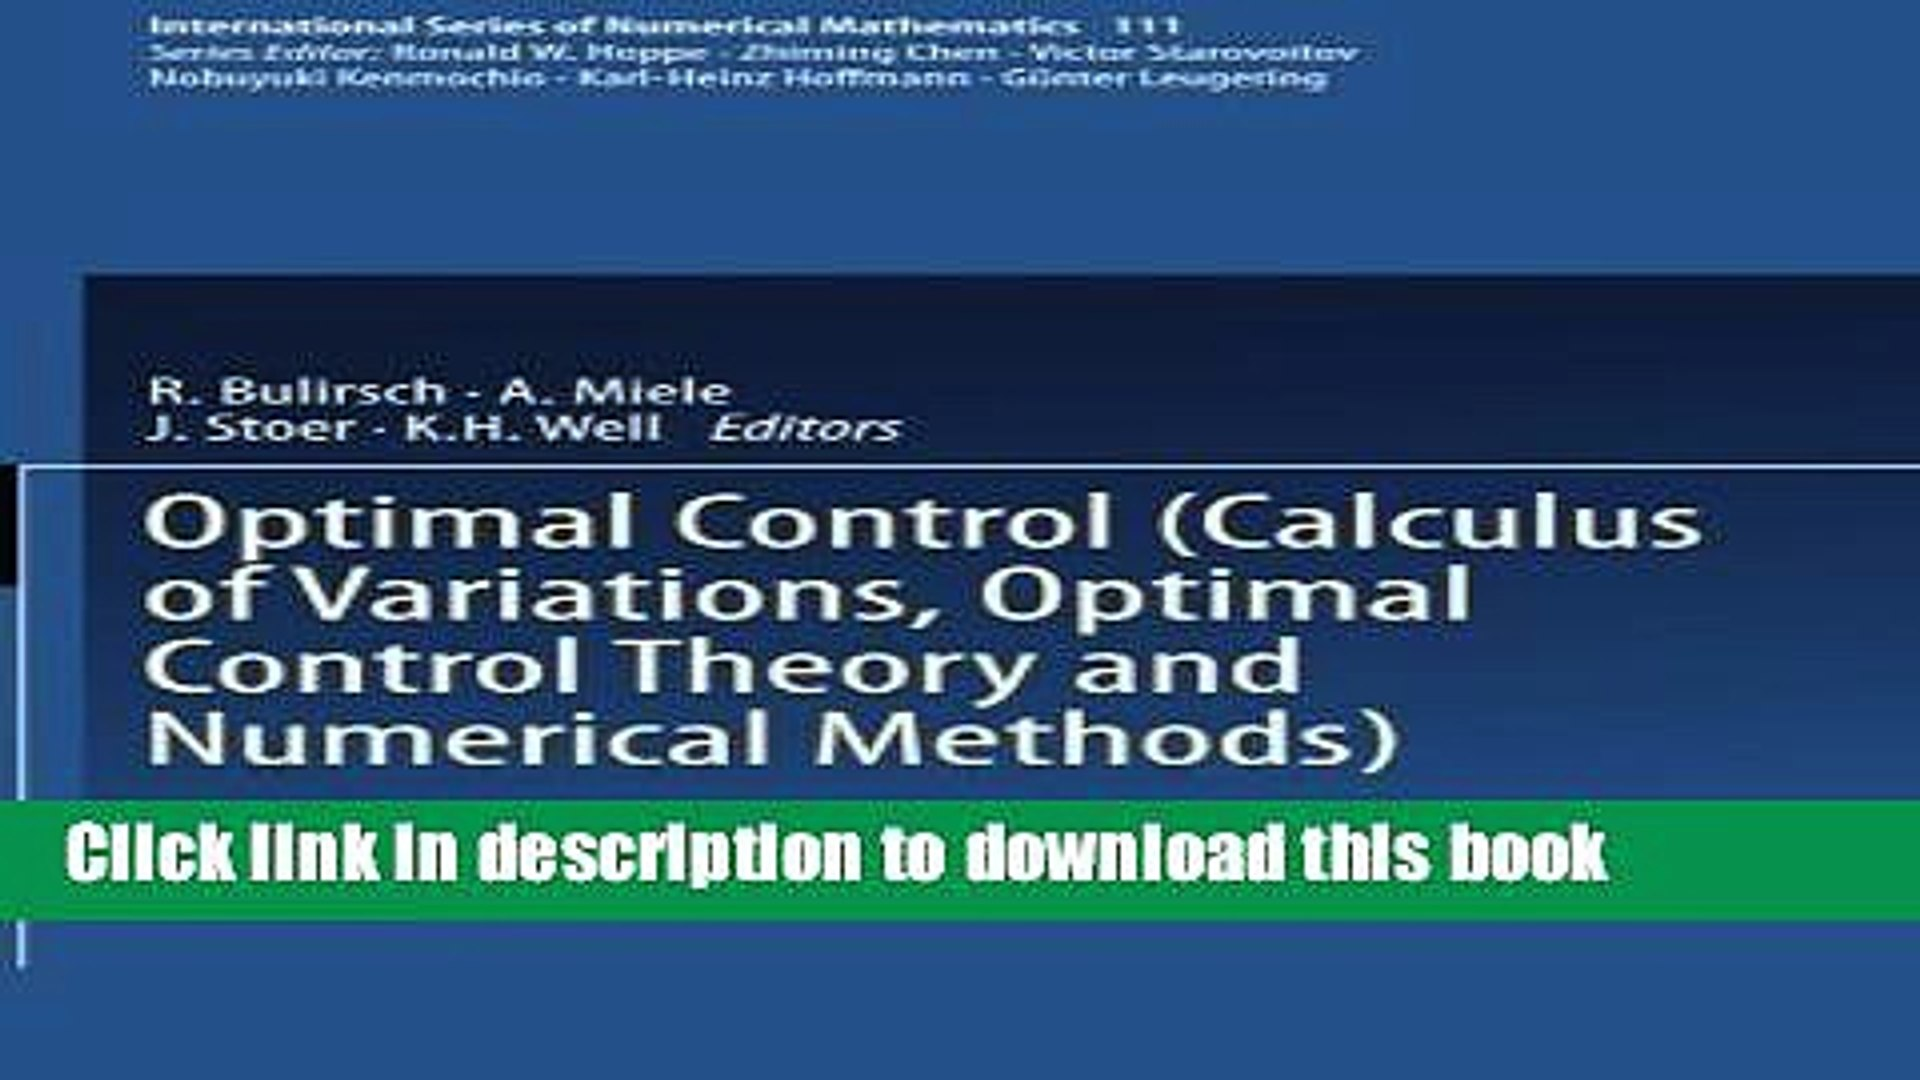 Calculus of Variations and Optimal Control Theory: A Concise Introduction